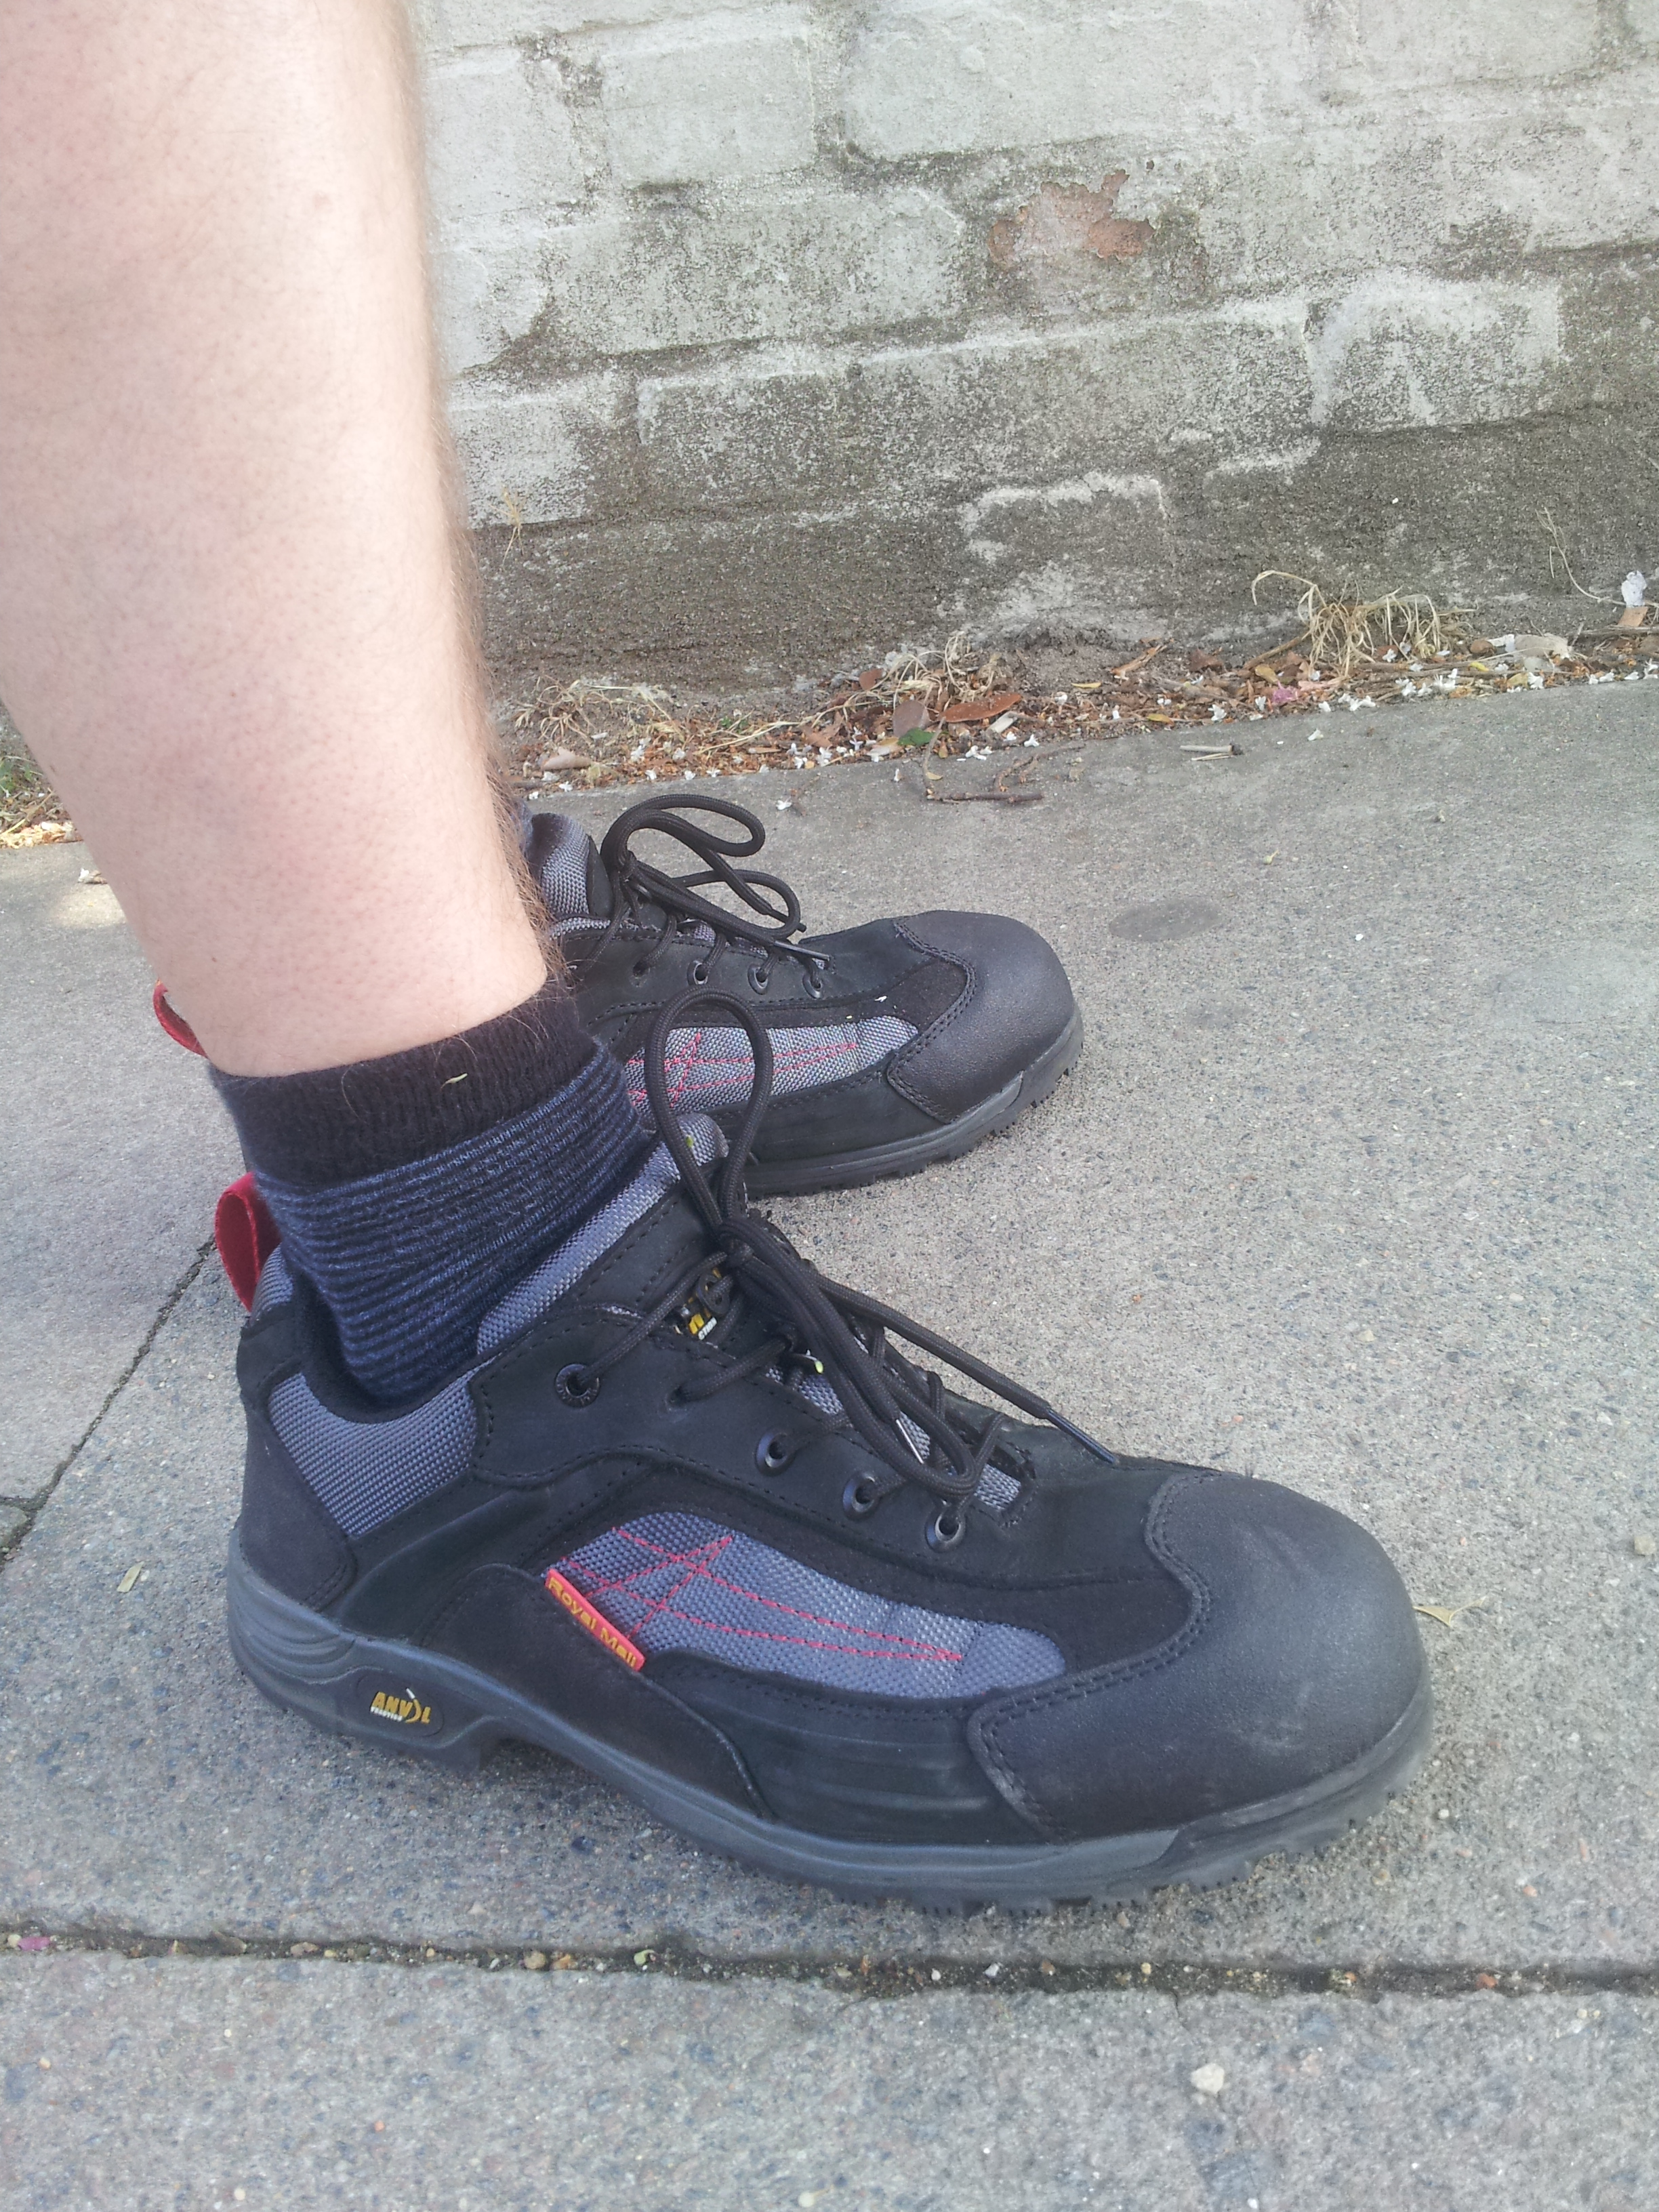 A Royal Mail spokesman said: 'The safety of our employees is a top priority for Royal Mail. 'A range of boots and shoes are available for our people and these are regularly updated based on the.